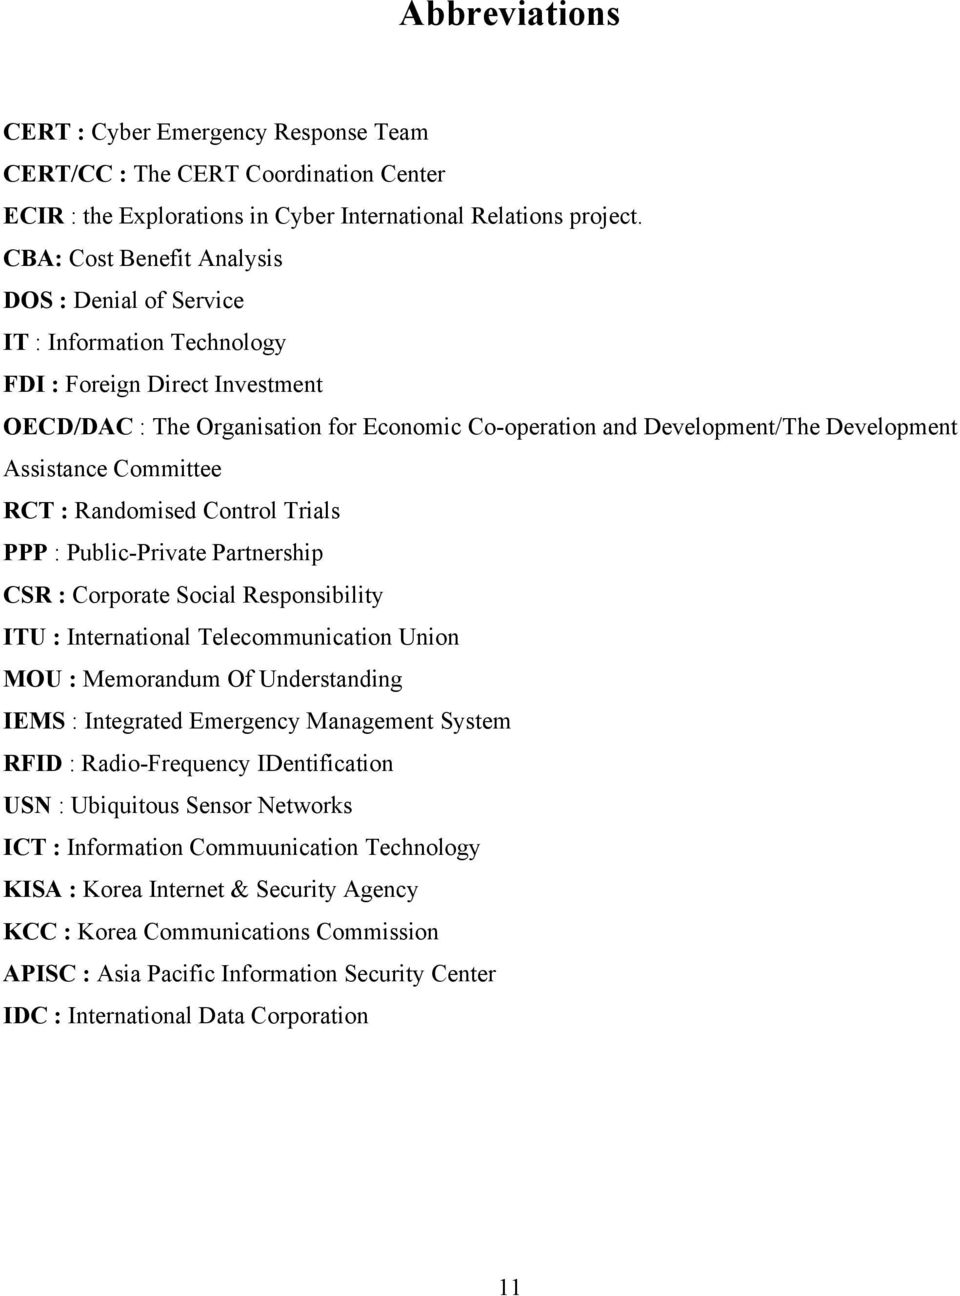 Assistance Committee RCT : Randomised Control Trials PPP : Public-Private Partnership CSR : Corporate Social Responsibility ITU : International Telecommunication Union MOU : Memorandum Of